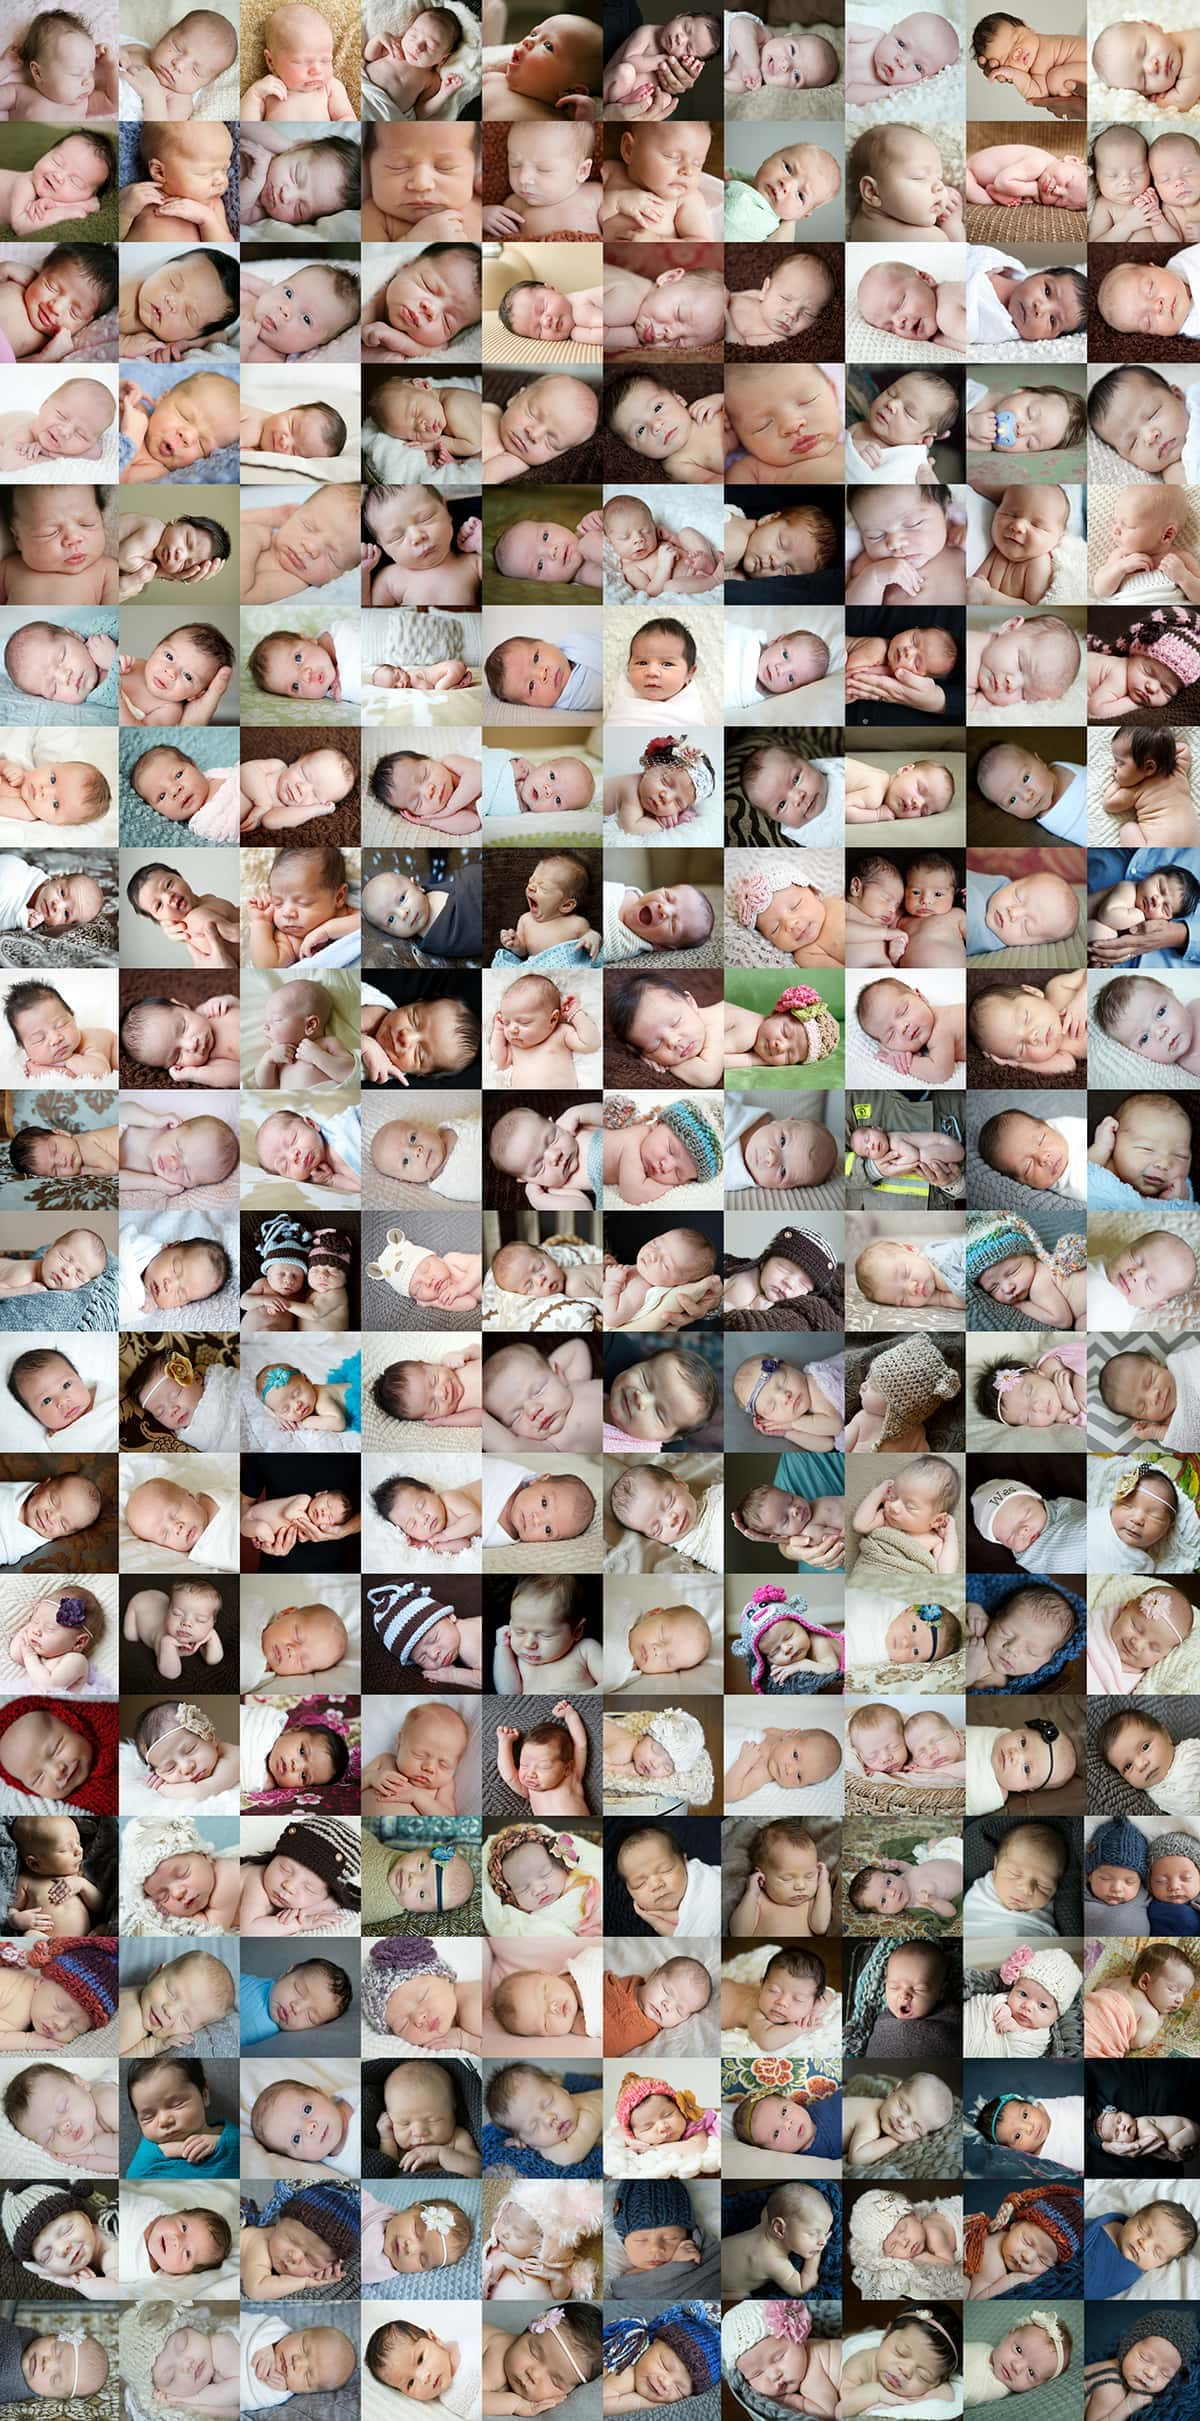 Babies 5-25 days old, from 2005-2015